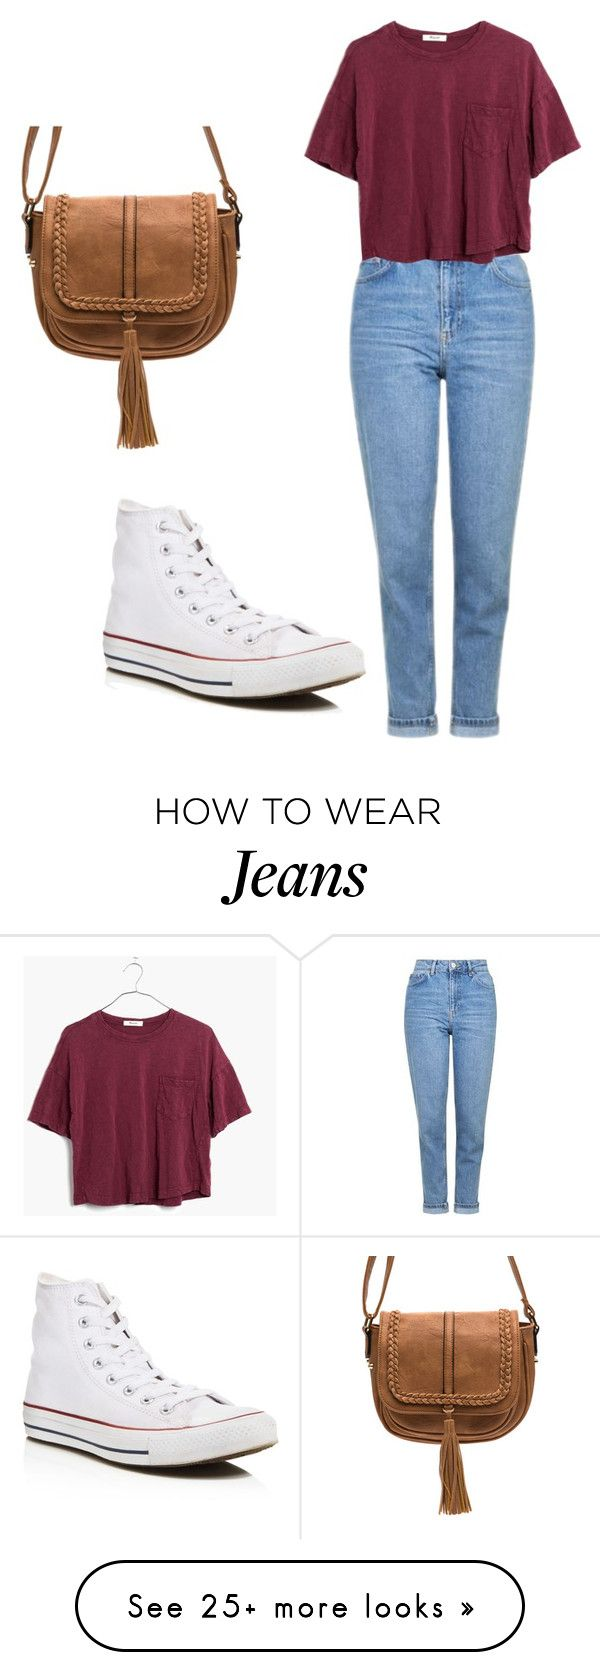 """Mom jeans ♥️ part 1"" by asiarobards on Polyvore featuring Topshop, Converse and Madewell"